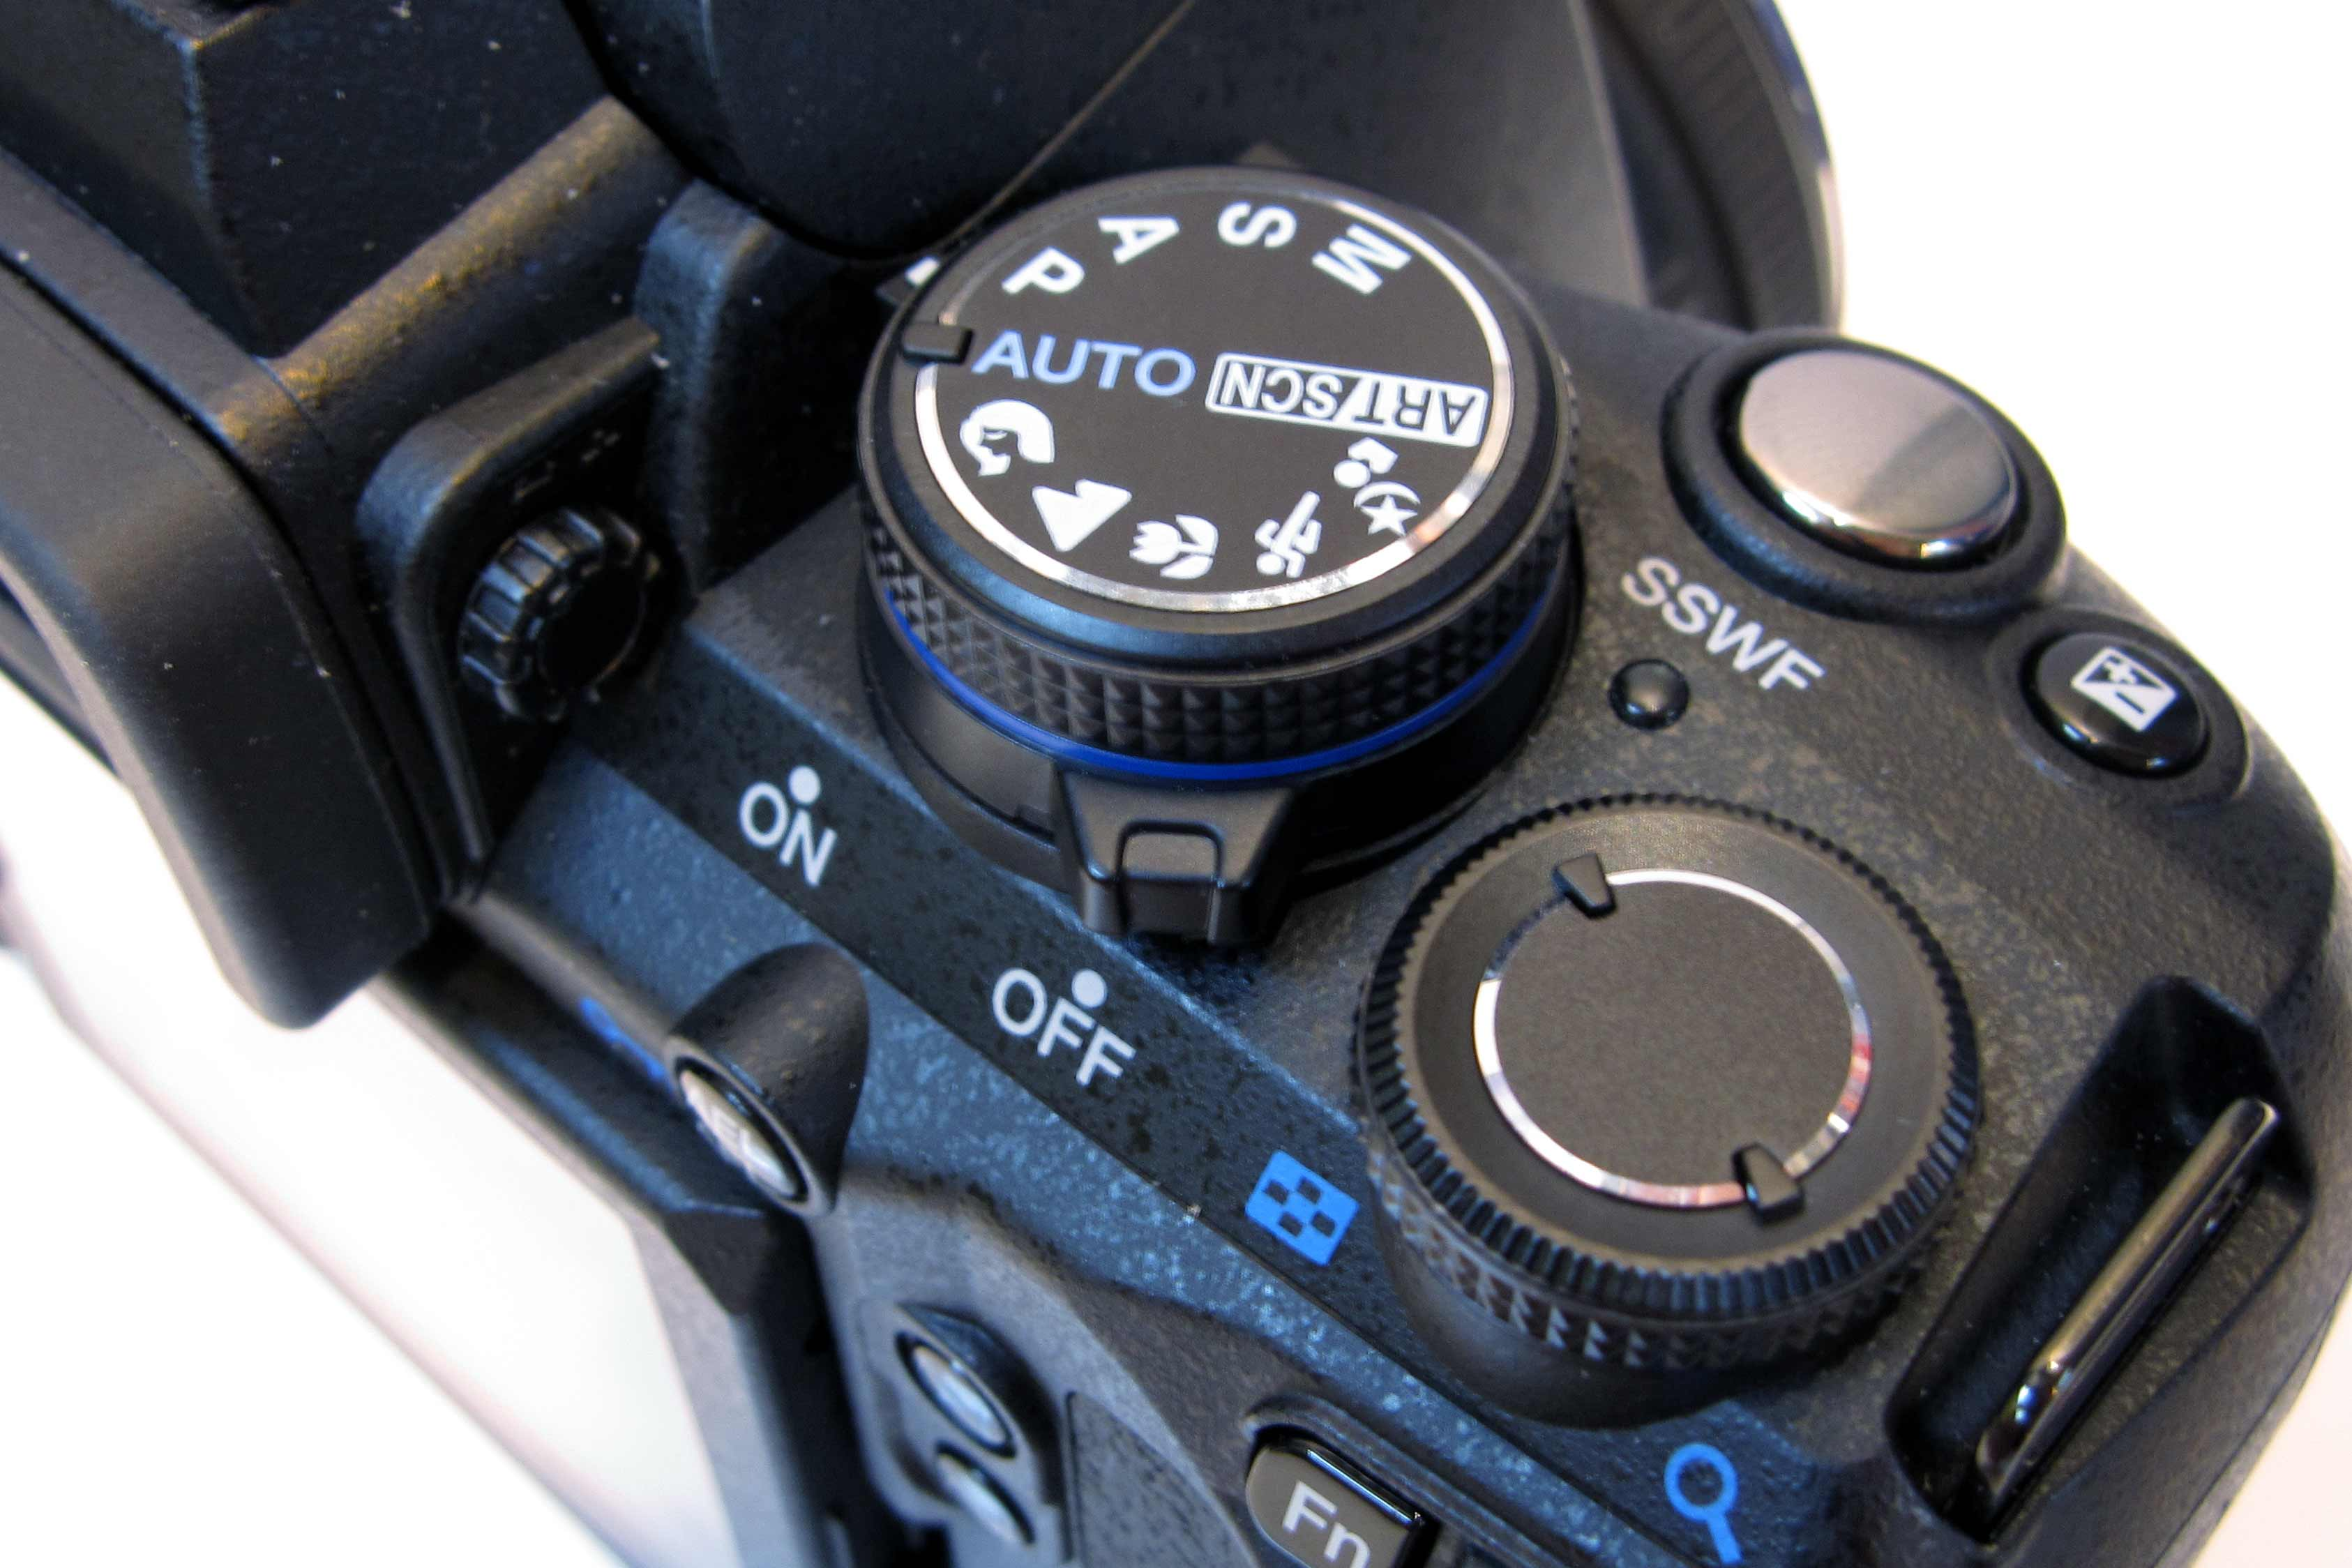 Why Looking at the Screen of DSLR is Wrong